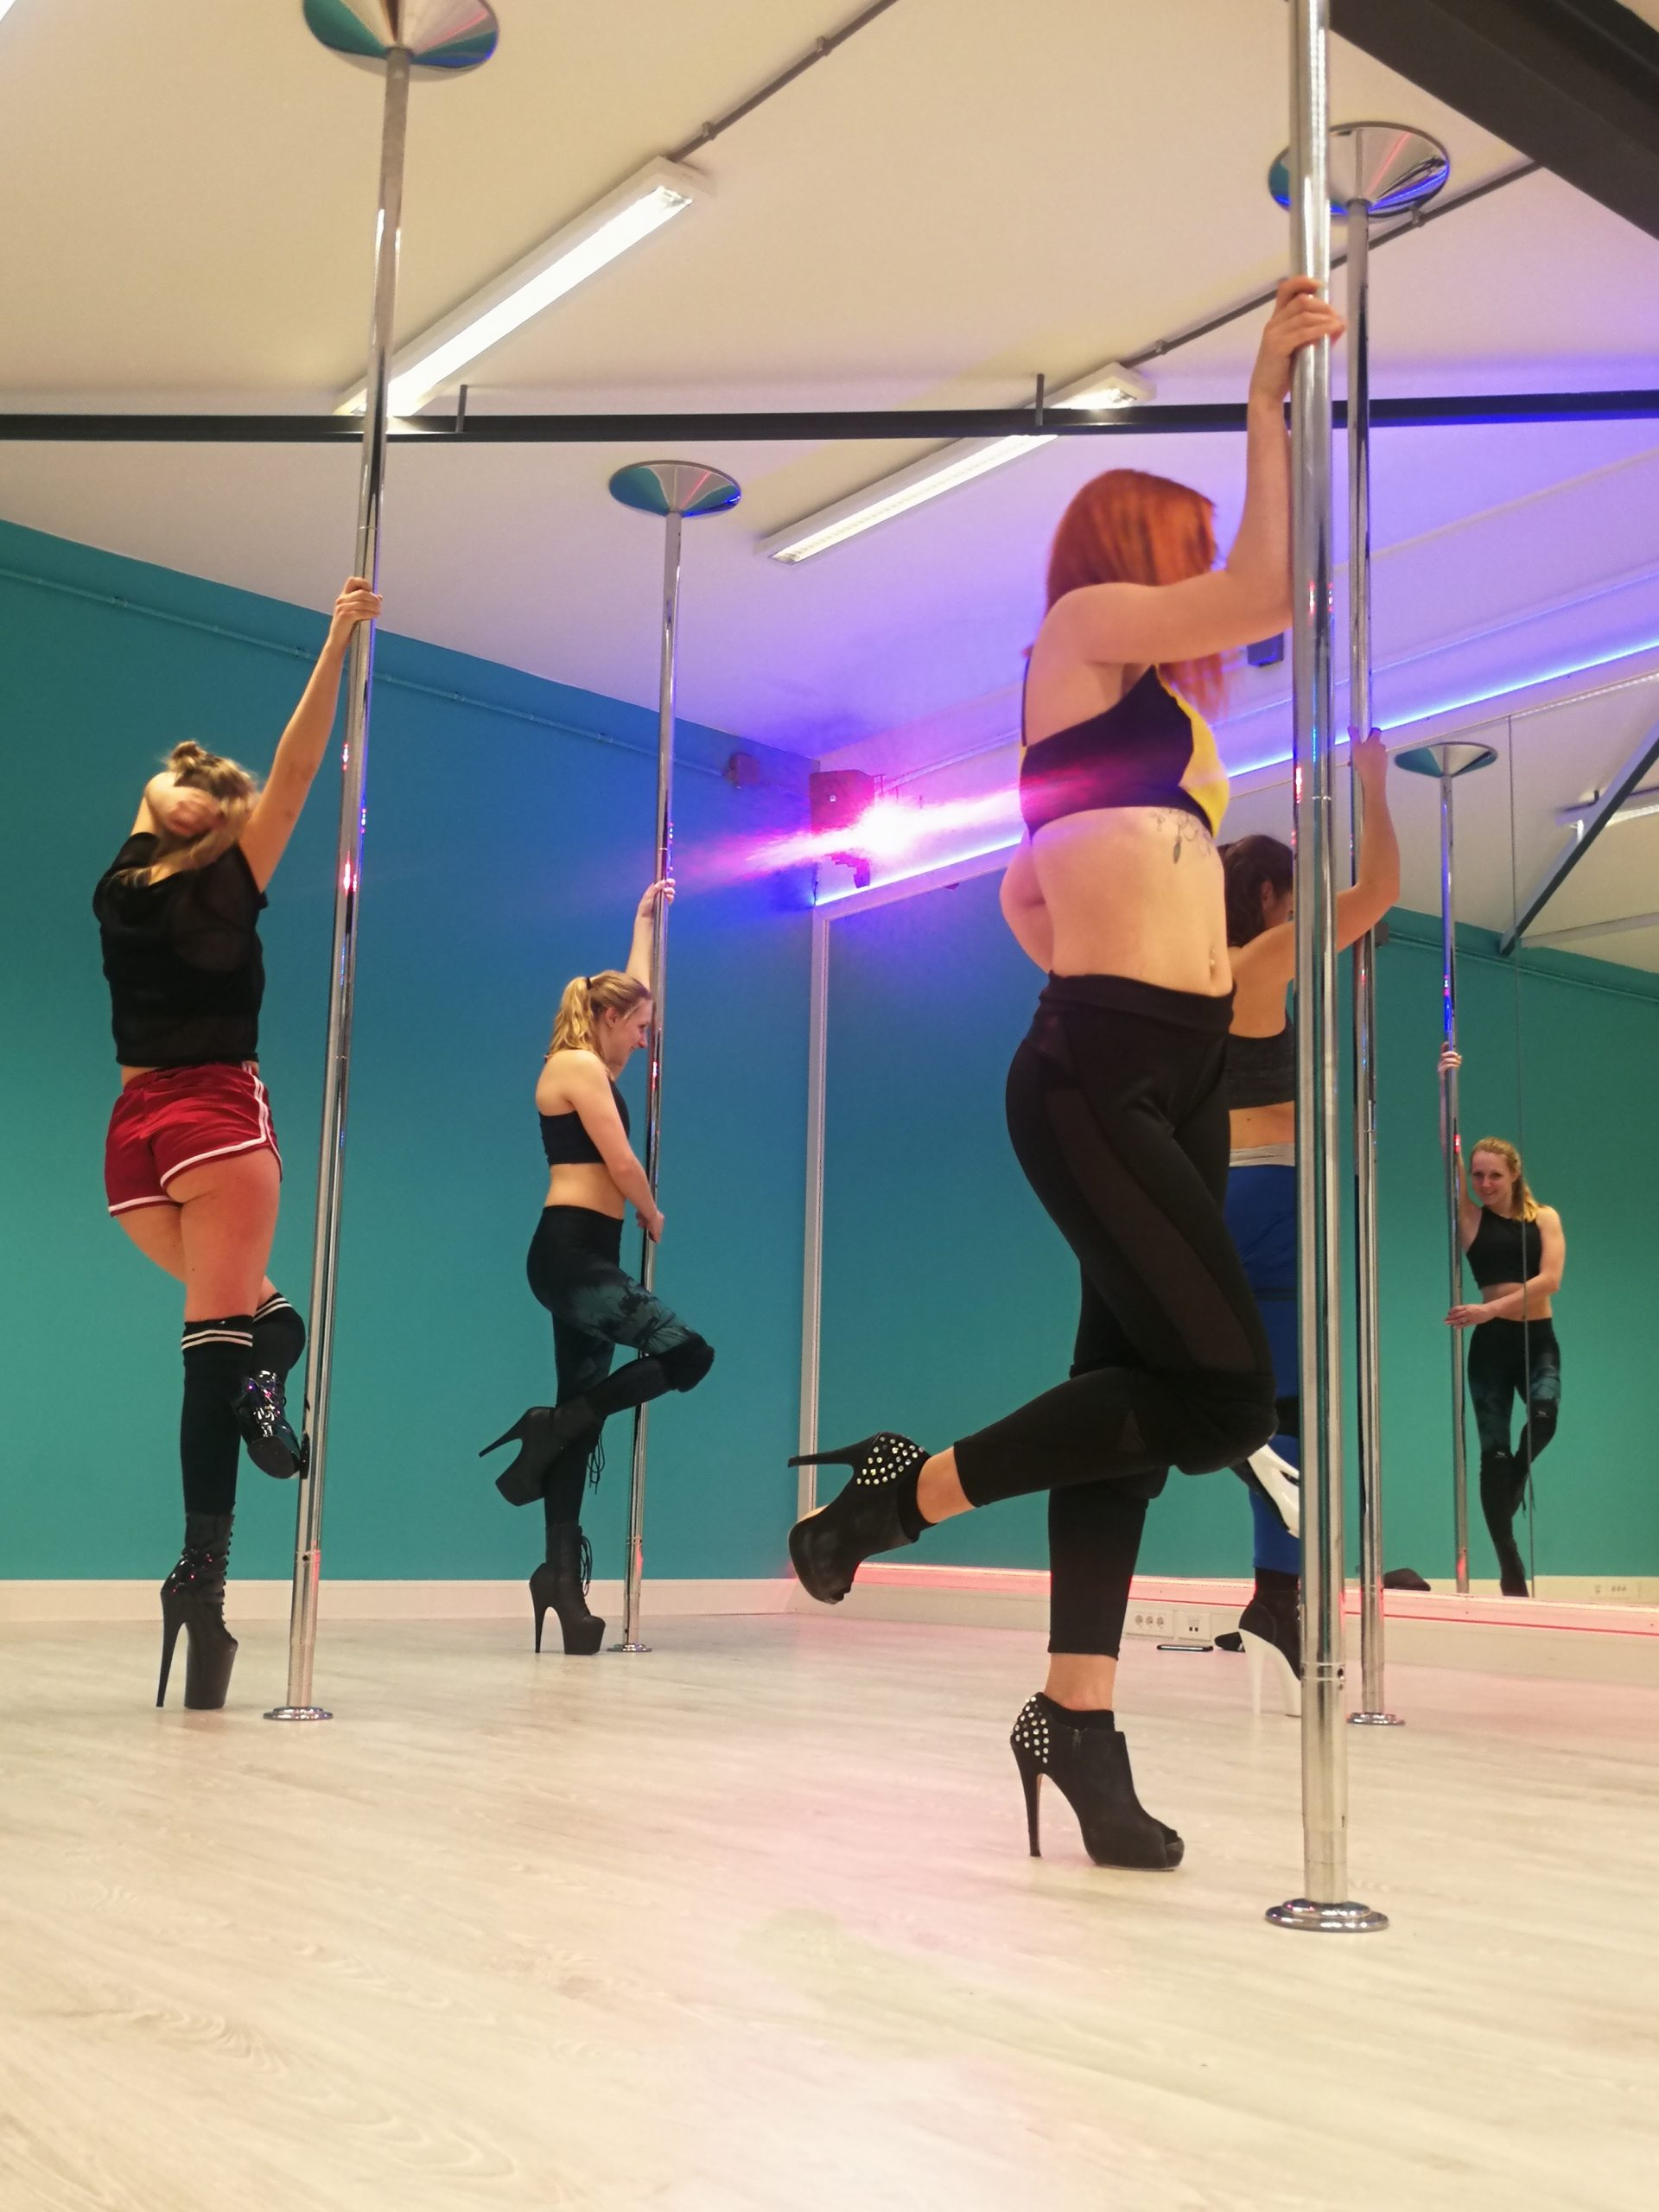 Jeny's Pole Dance Studio - Exotic Pole